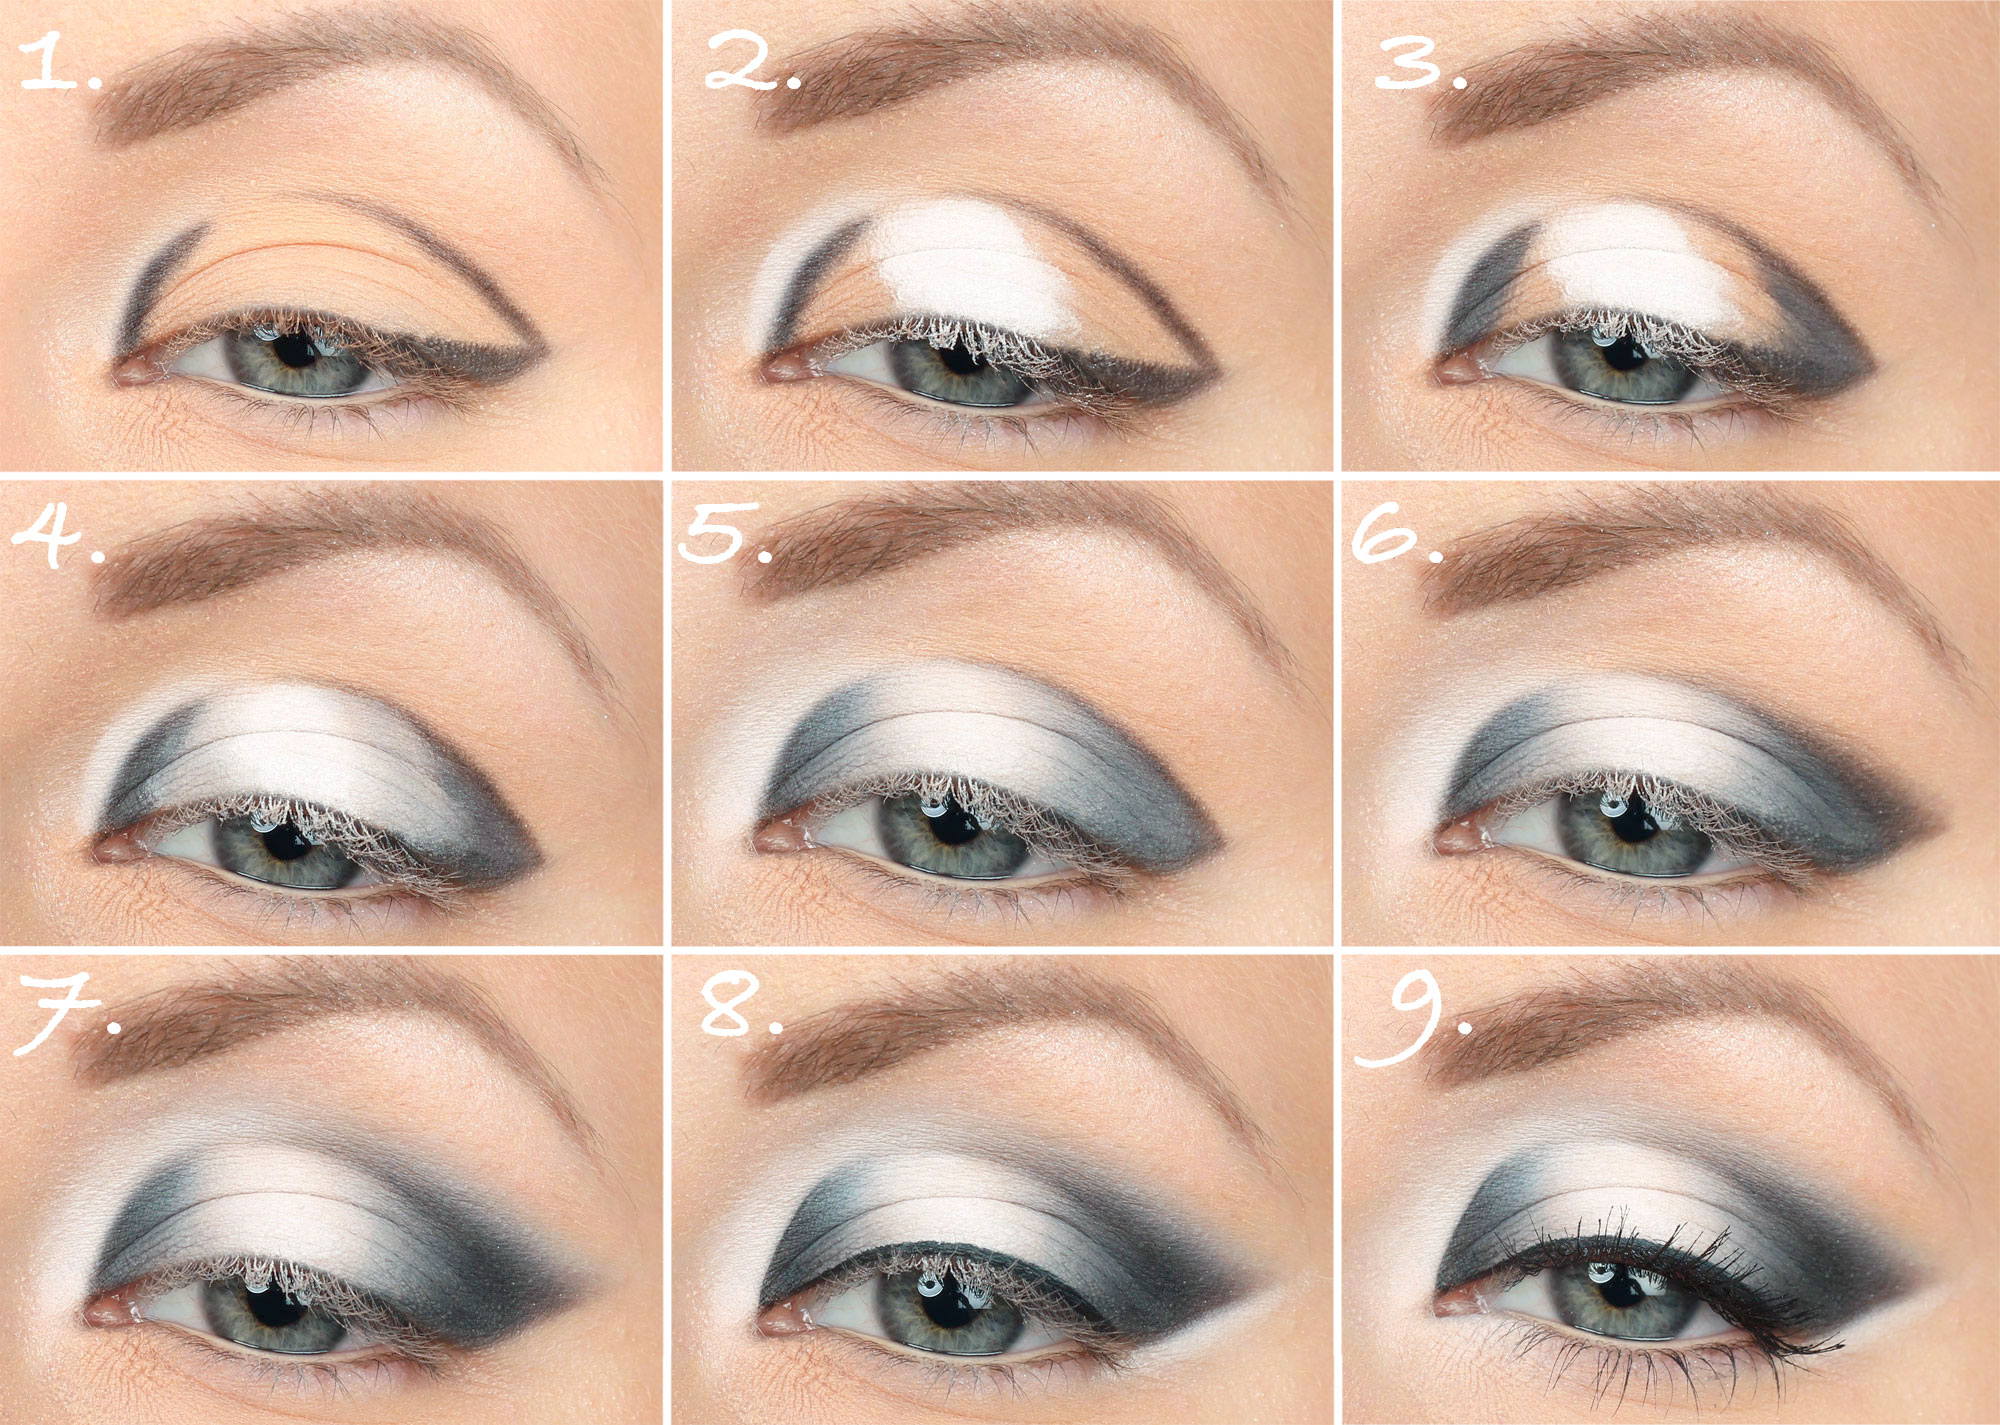 paese-kashmir-eyeshadow-tutorial